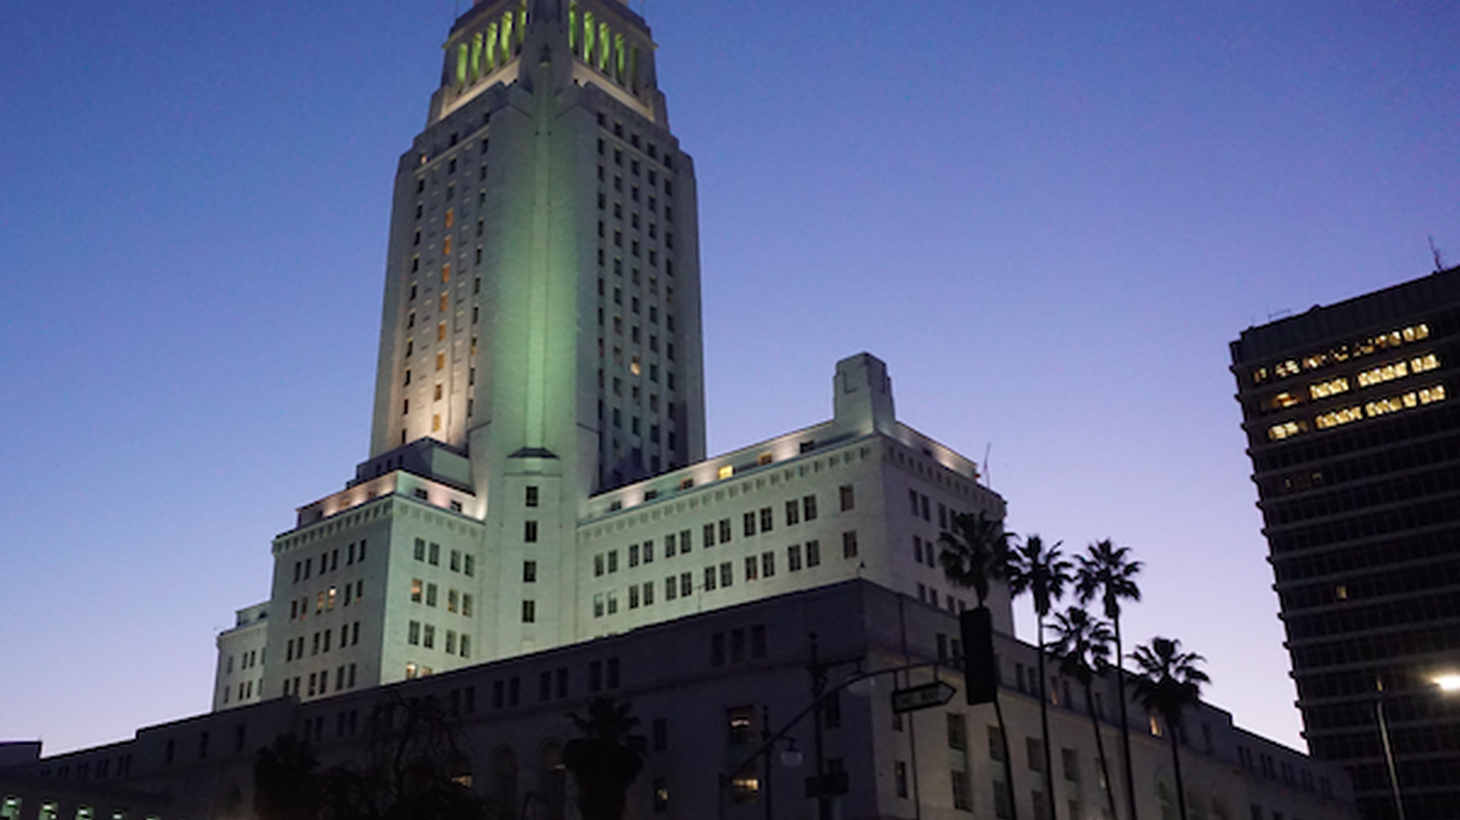 Los Angeles is redefining itself as a city. So what should it look like? That's a question on the mind of Christopher Hawthorne. He has a new job at City Hall as its first ever design chief.